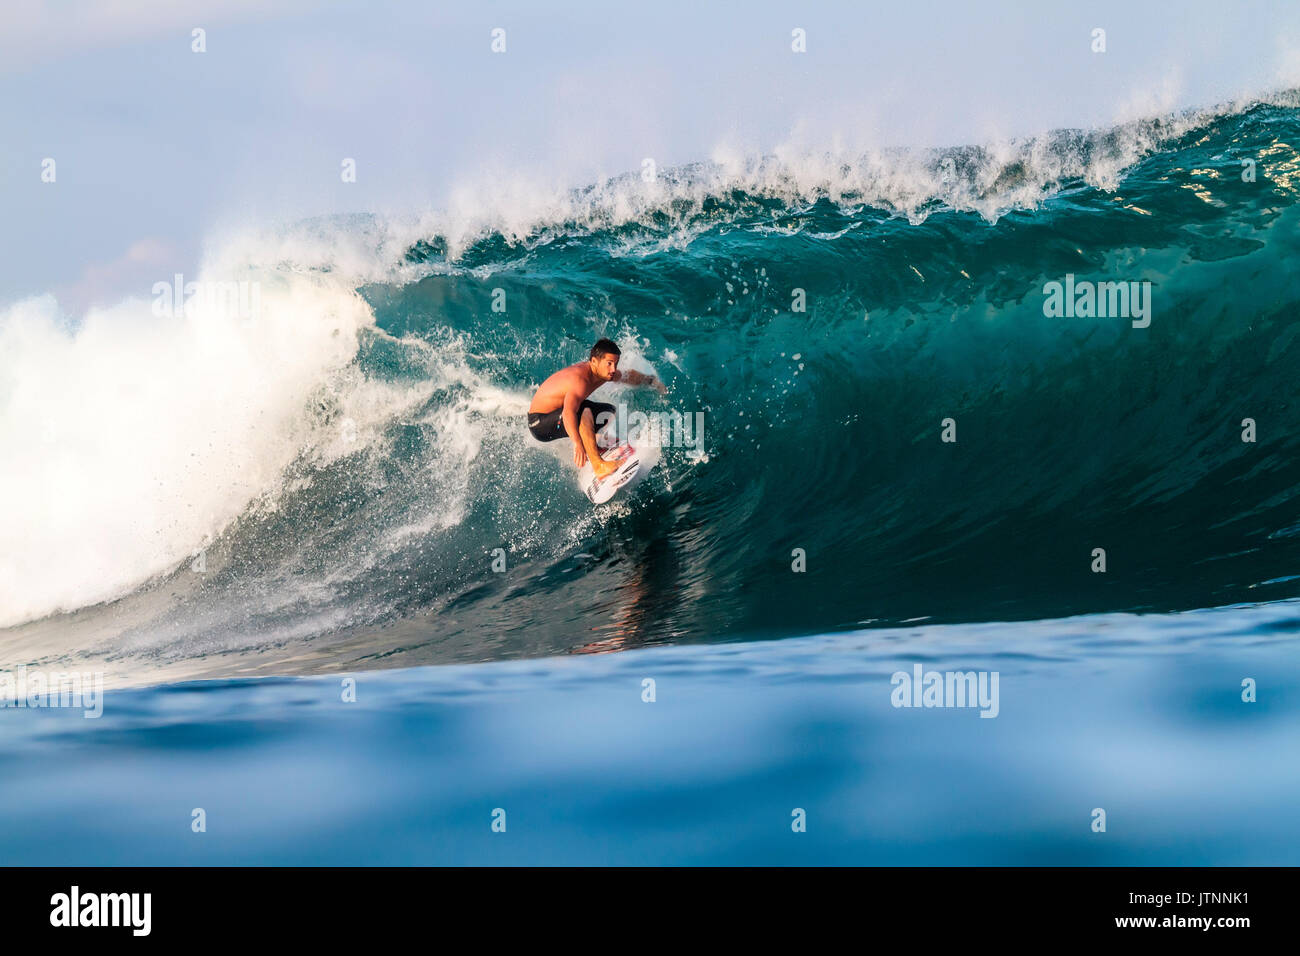 Surfer surf sulle onde, Lakey Peak, Central Sumbawa, Indonesia Foto Stock